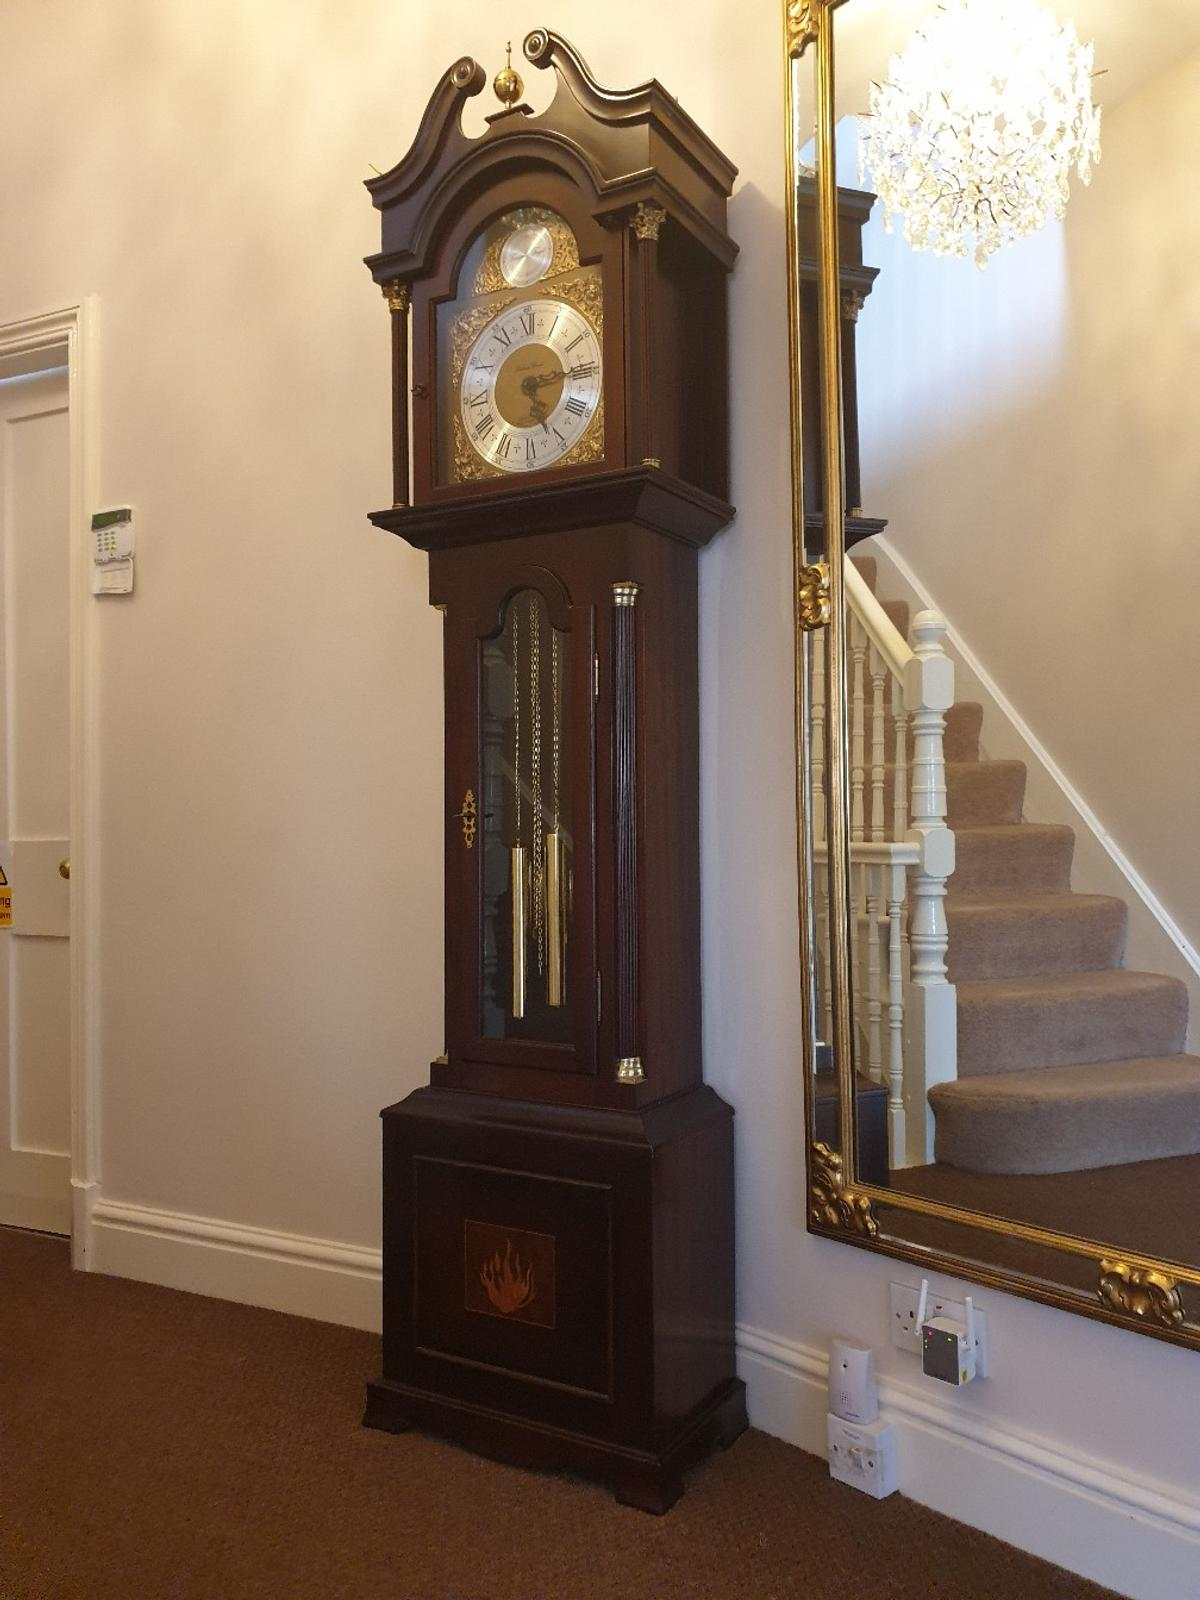 grandfather clock in LE11 Charnwood for £450 00 for sale